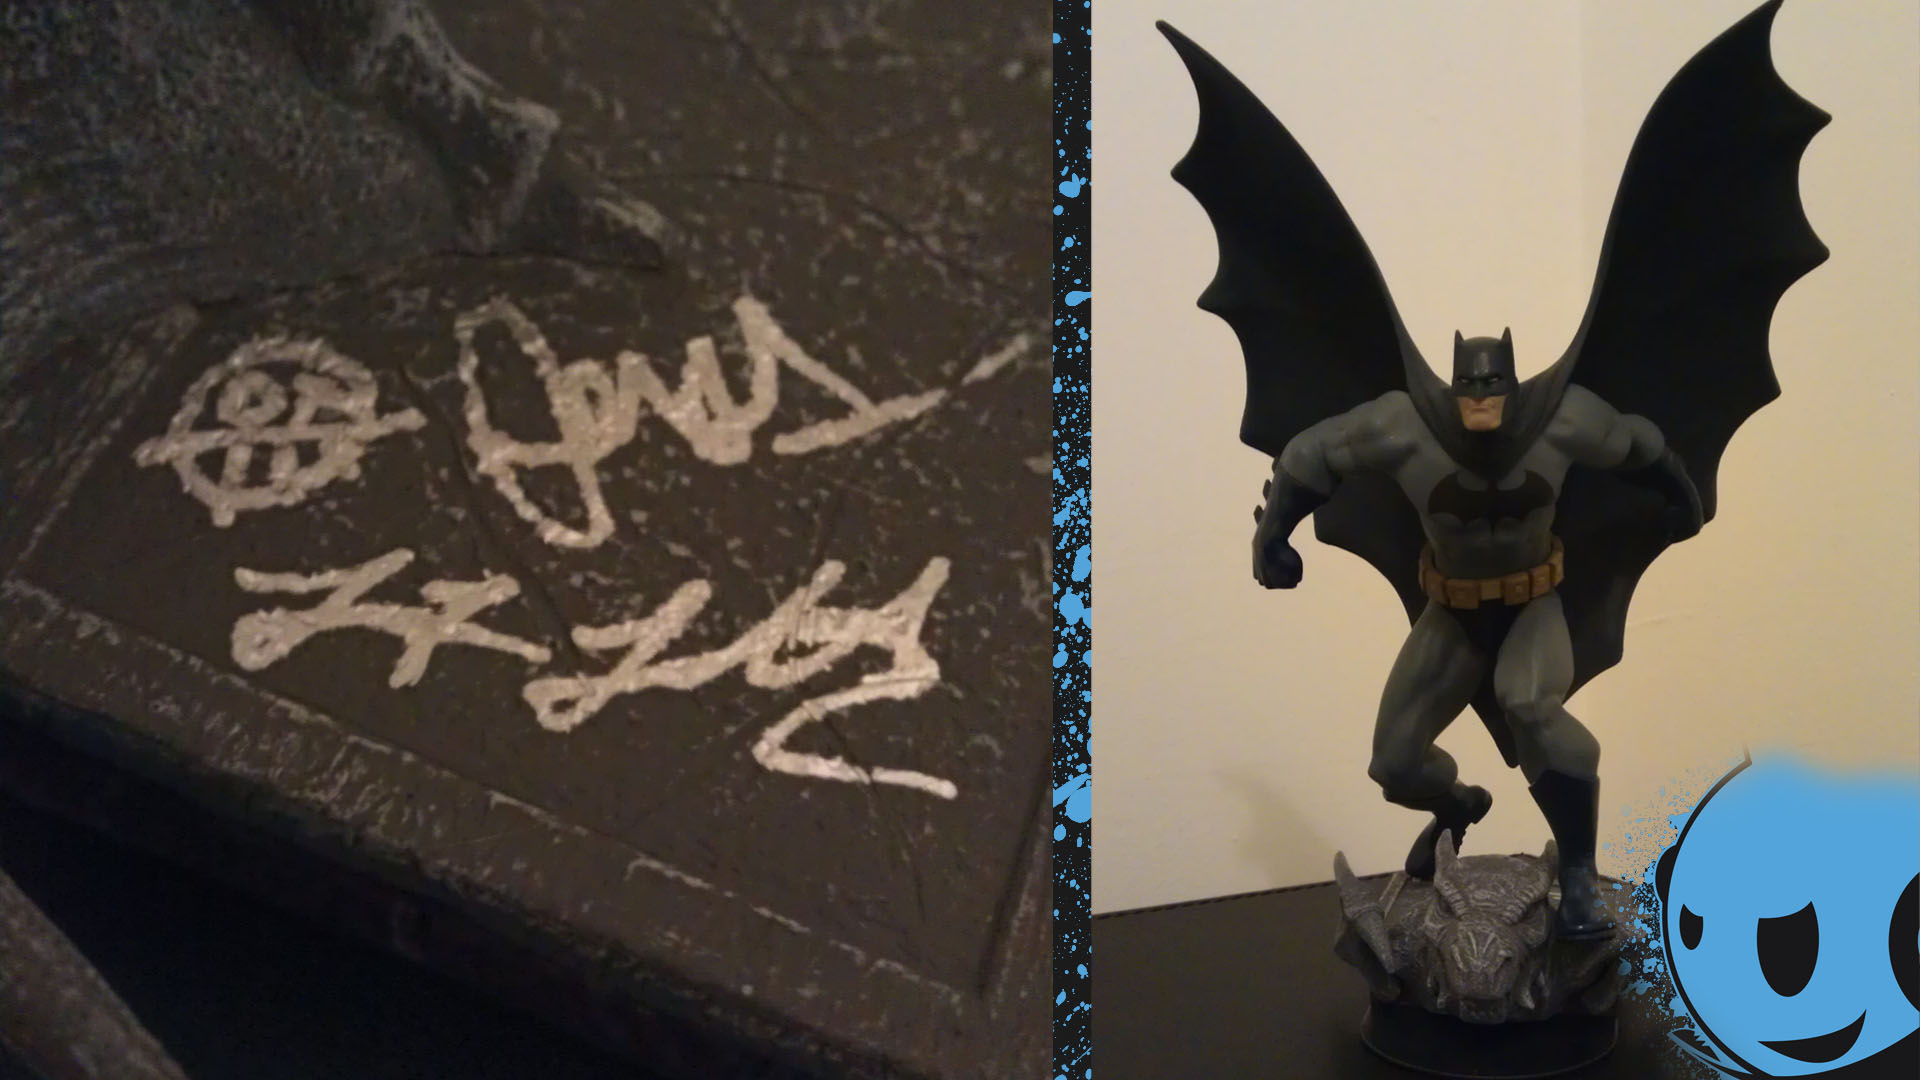 Signed Batman Figurine Giveaway by Animate